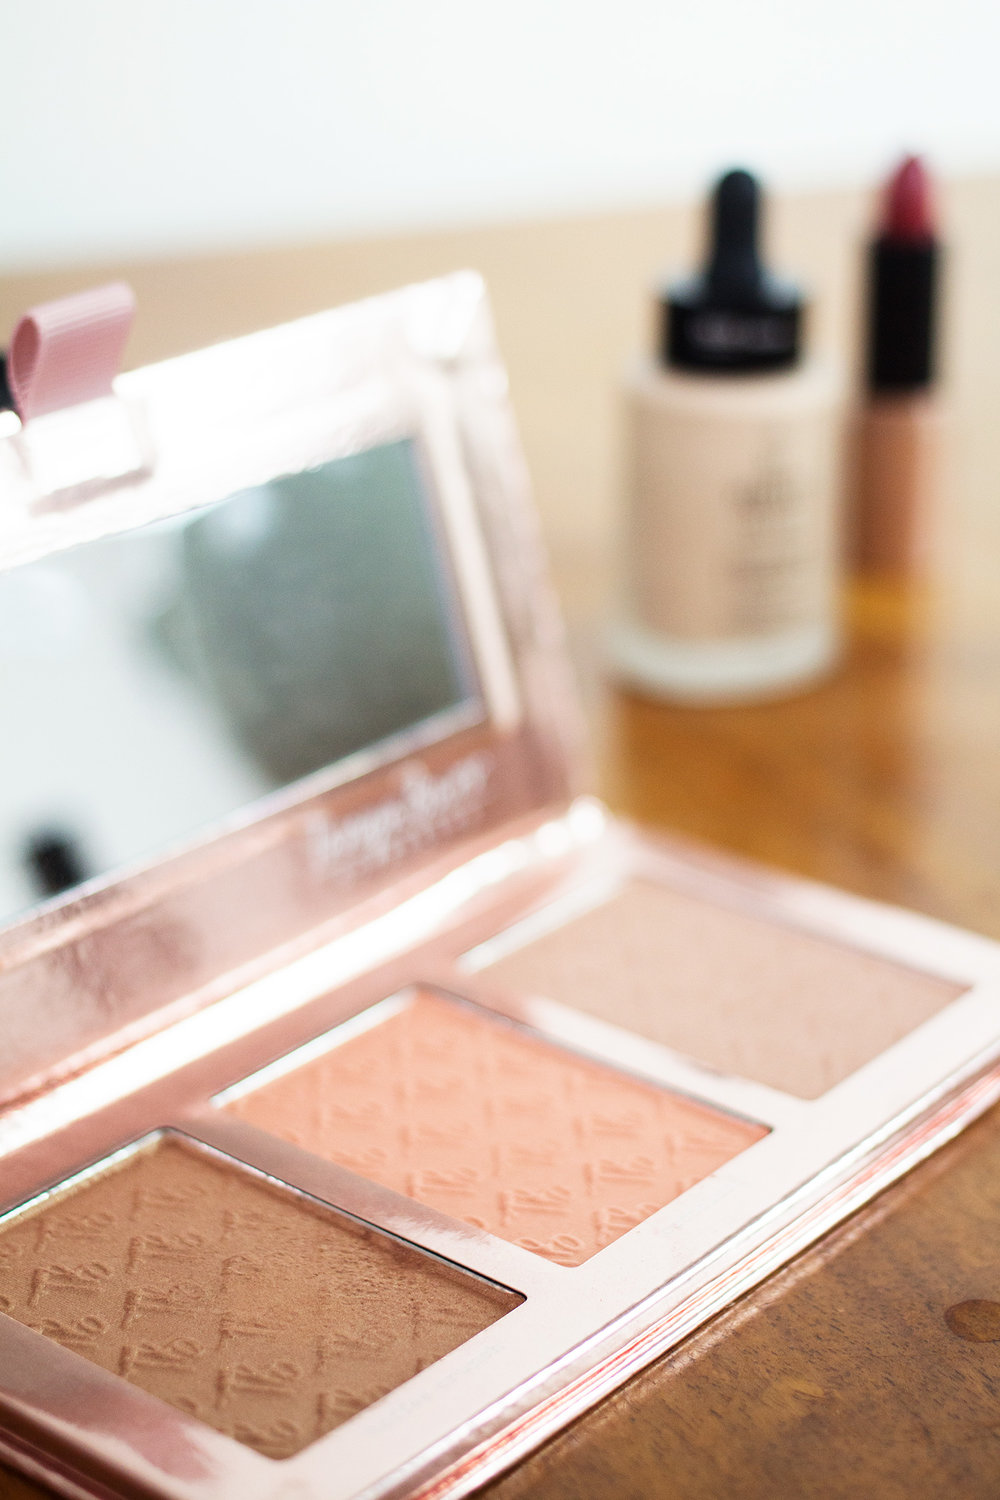 Tanya Burr Sweet Cheeks Palette. Photography by Alice Red.